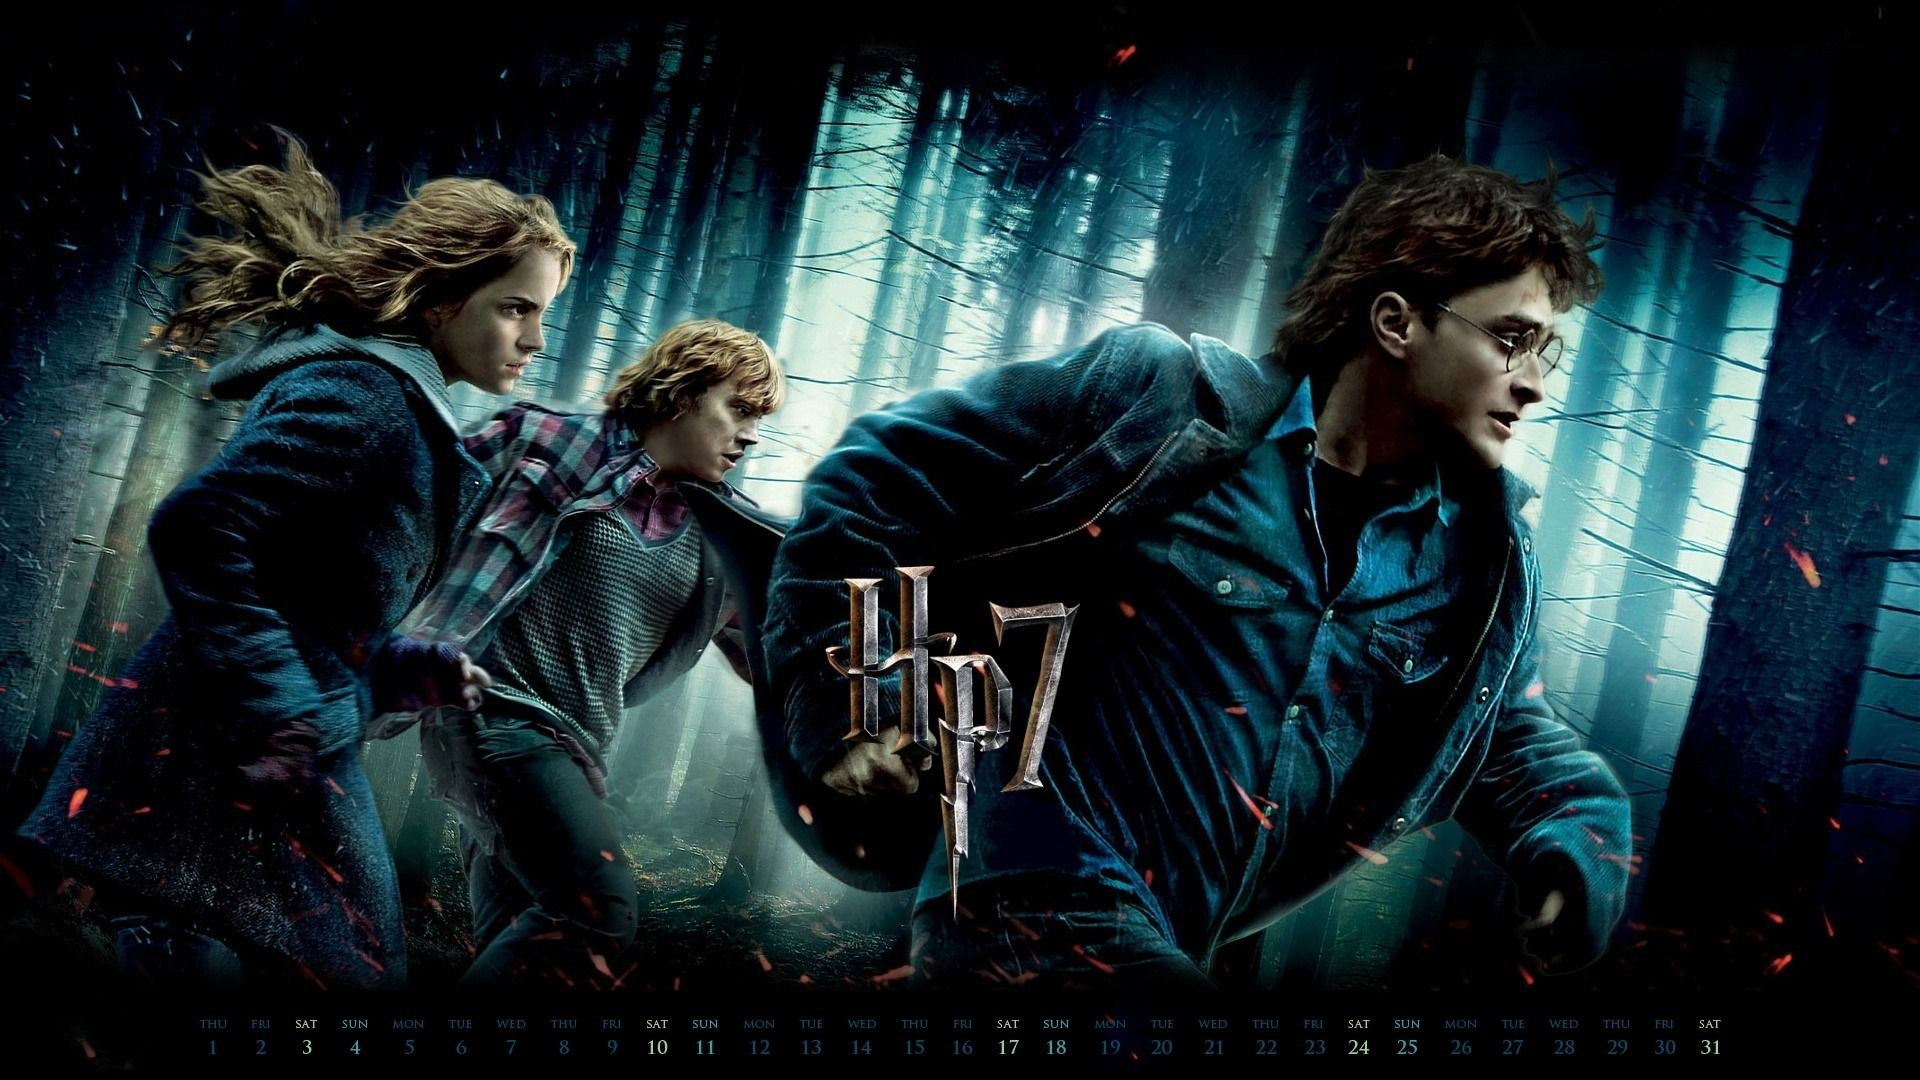 1920x1080 HD Movie Wallpapers | Harry Potter 7 Movie Wallpaper HD 1080p For Desktop